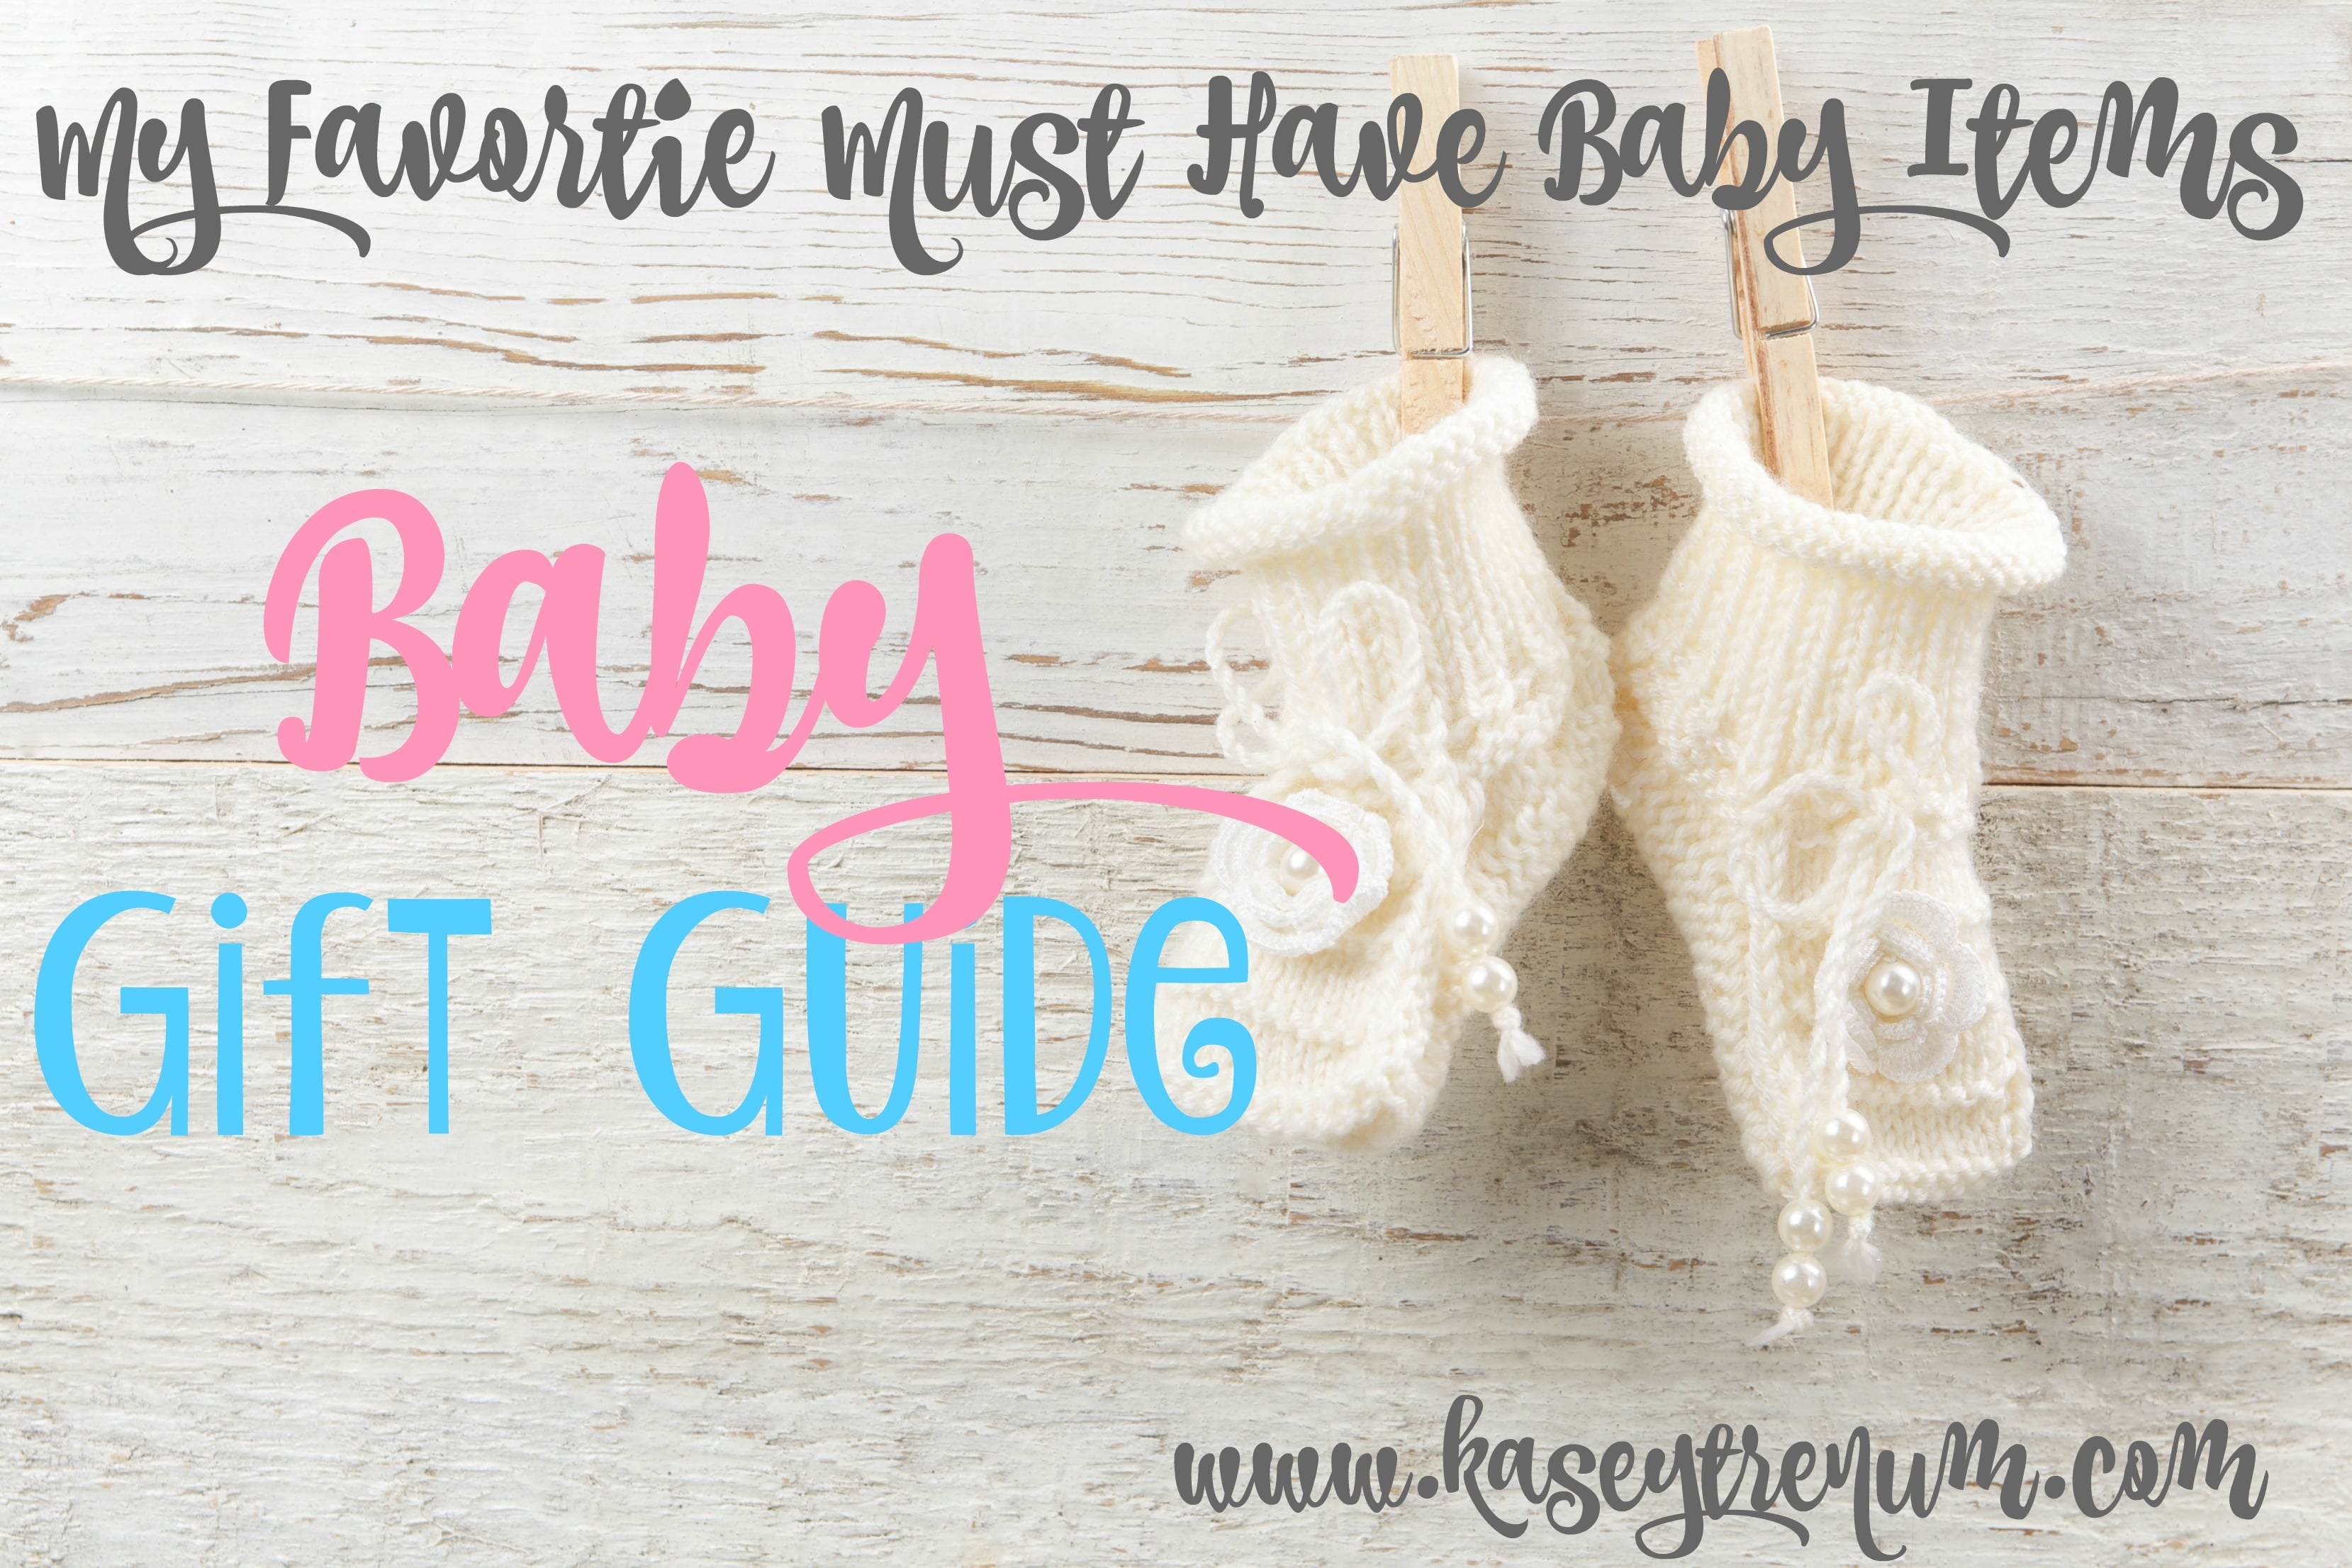 Baby Gift Guide : Baby gift guide my most favorite must have items kasey trenum